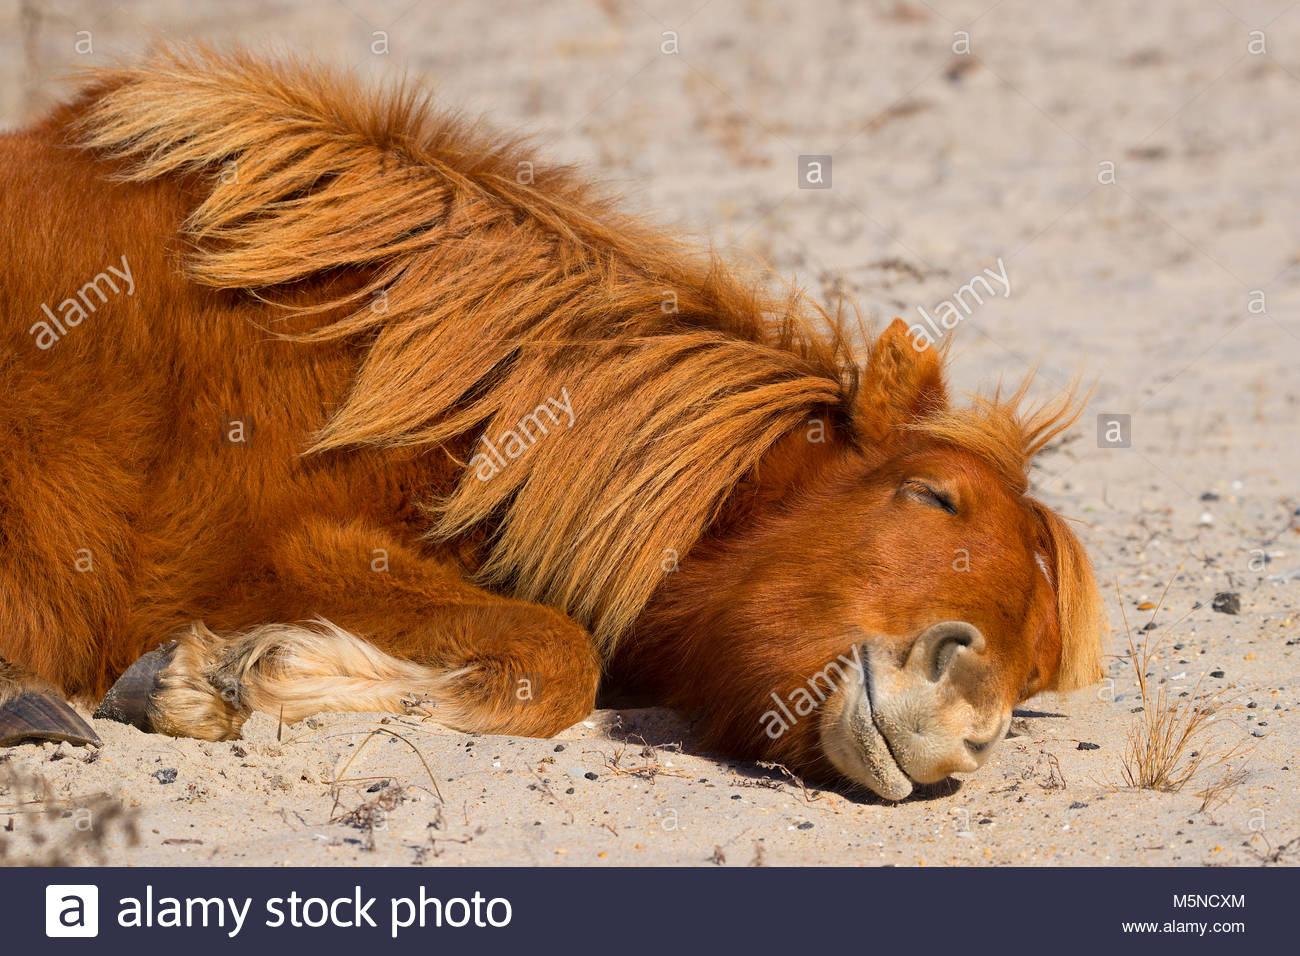 An Assateague horse (Equus caballus), also known as a Chincoteague pony, takes a nap on a sand dune in the Assateague - Stock Image